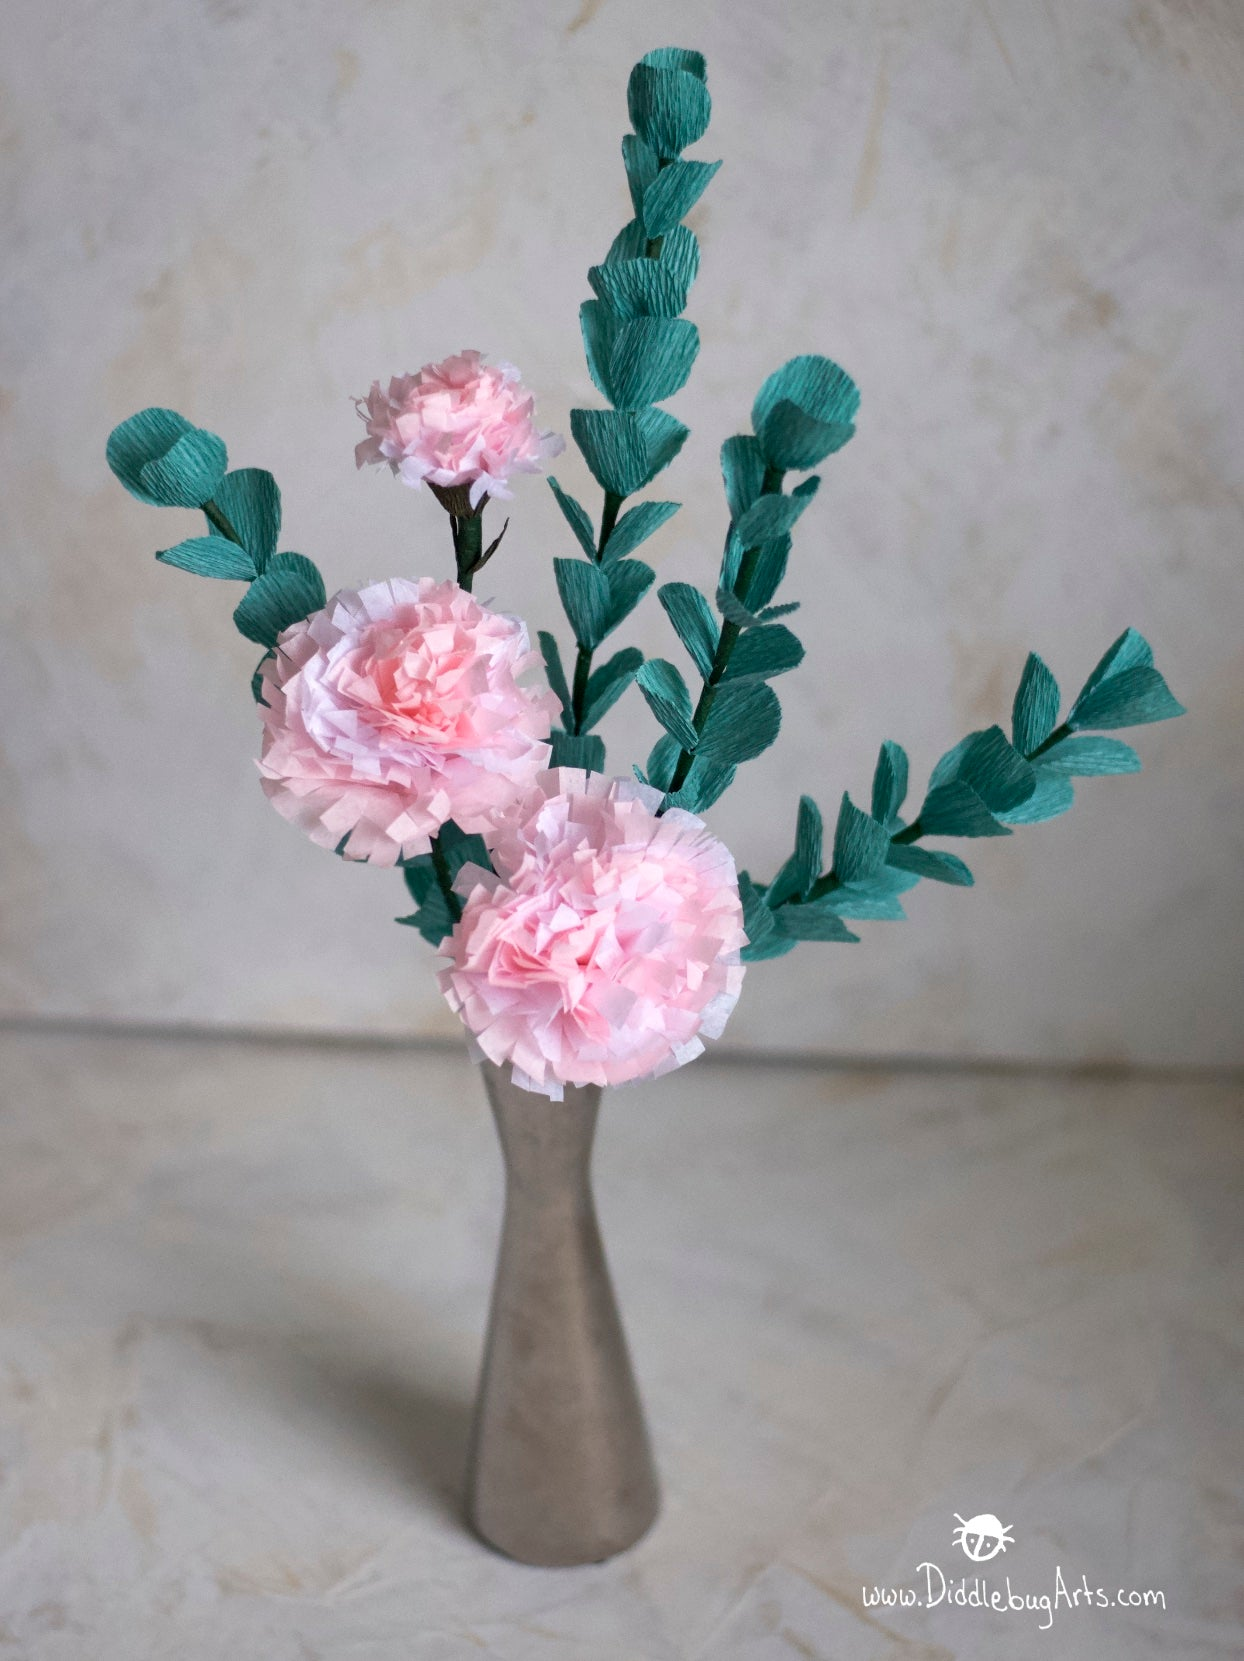 Paper eucalyptus stems in a silver vase with paper pink carnations